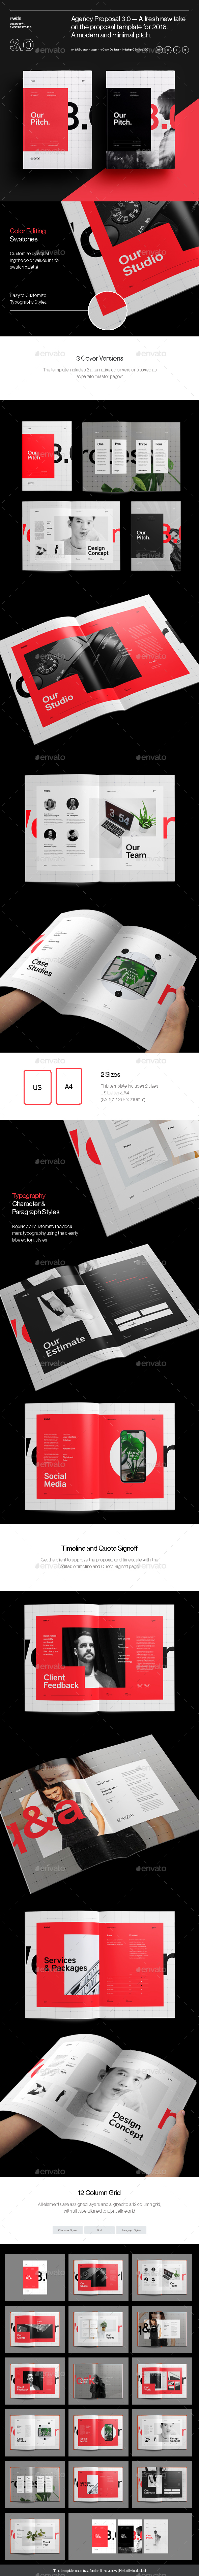 GraphicRiver Agency Proposal 3.0 21054901